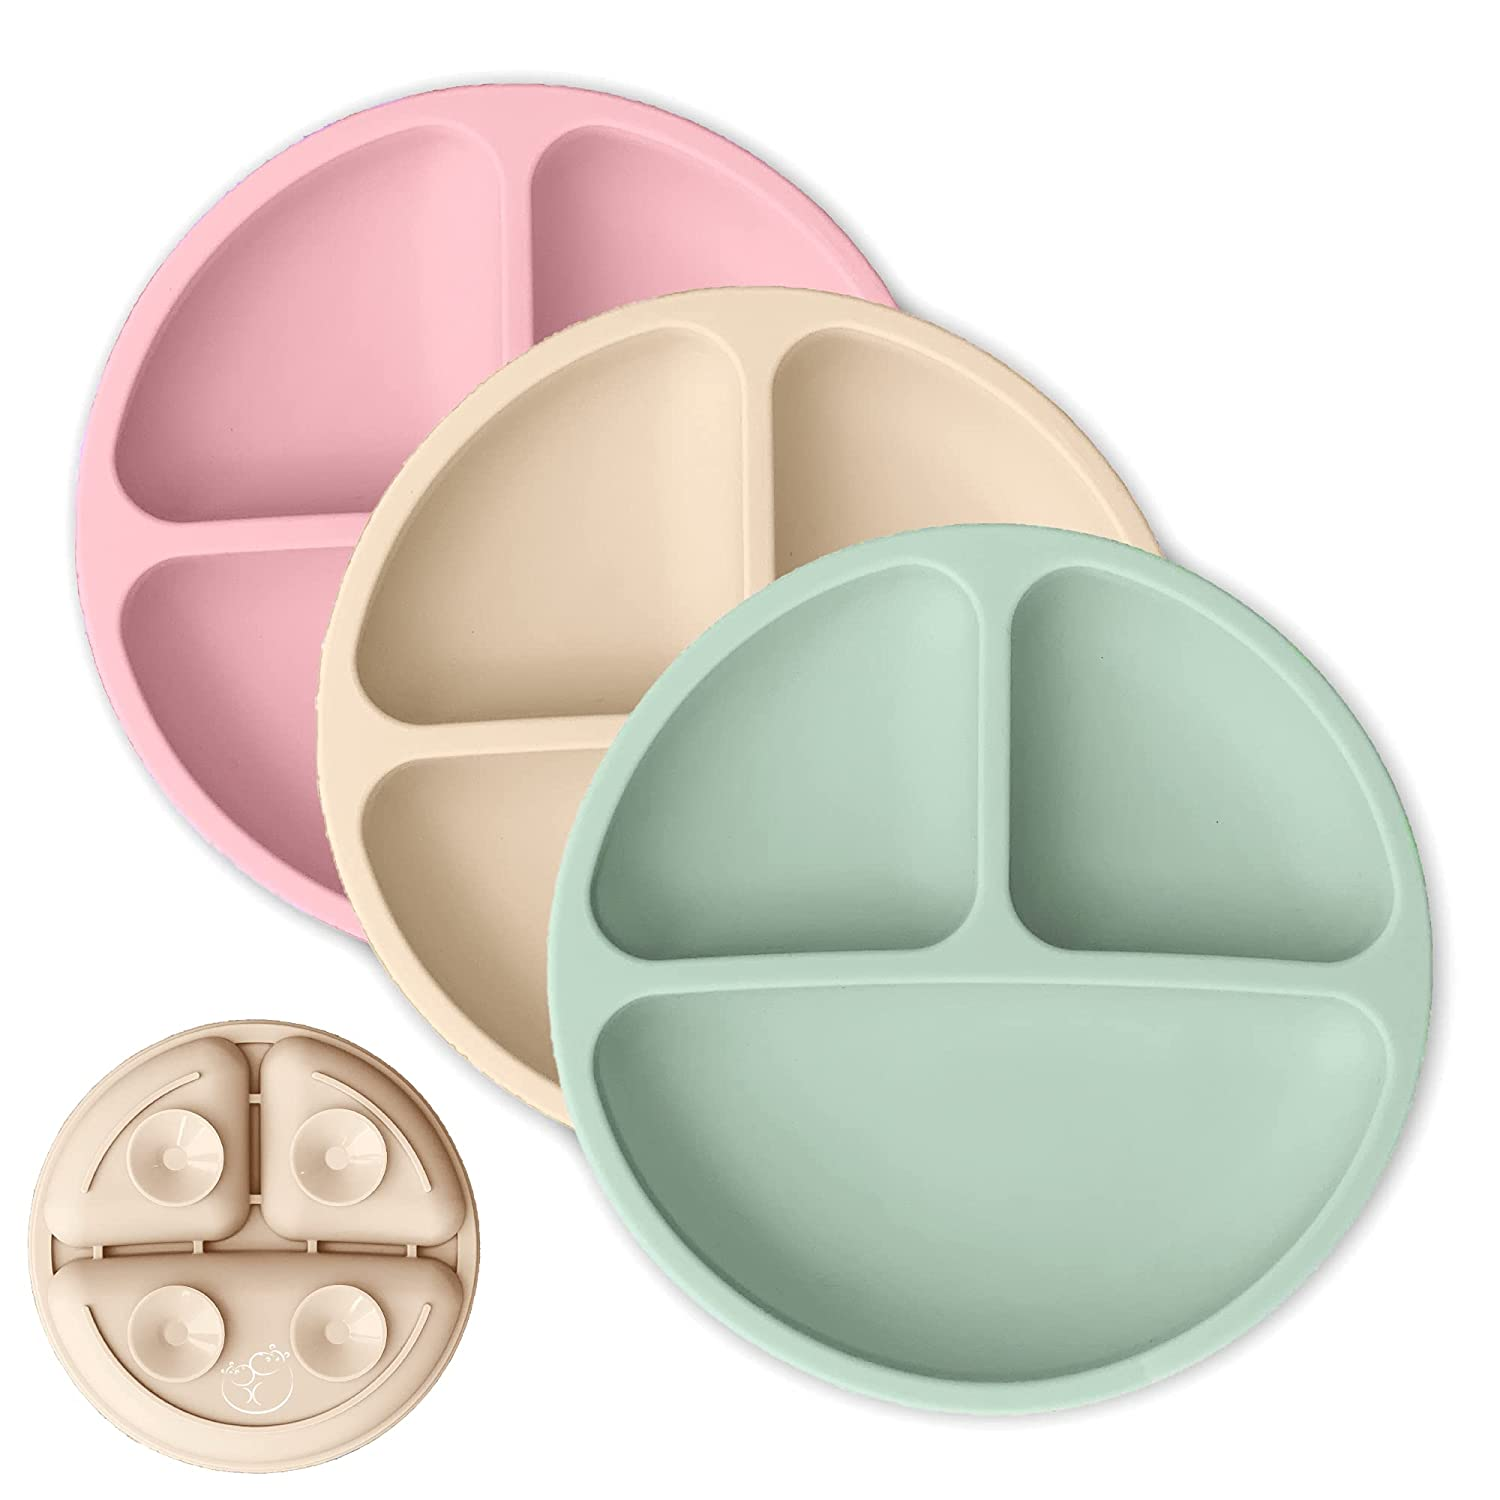 Hippypotamus Toddler Plates with Suction - Baby Plates - 100% Food-Grade Silicone Divided Plates - BPA Free - Microwave & Dishwasher Safe - Set of 3 (Sage/Blush/Nude)